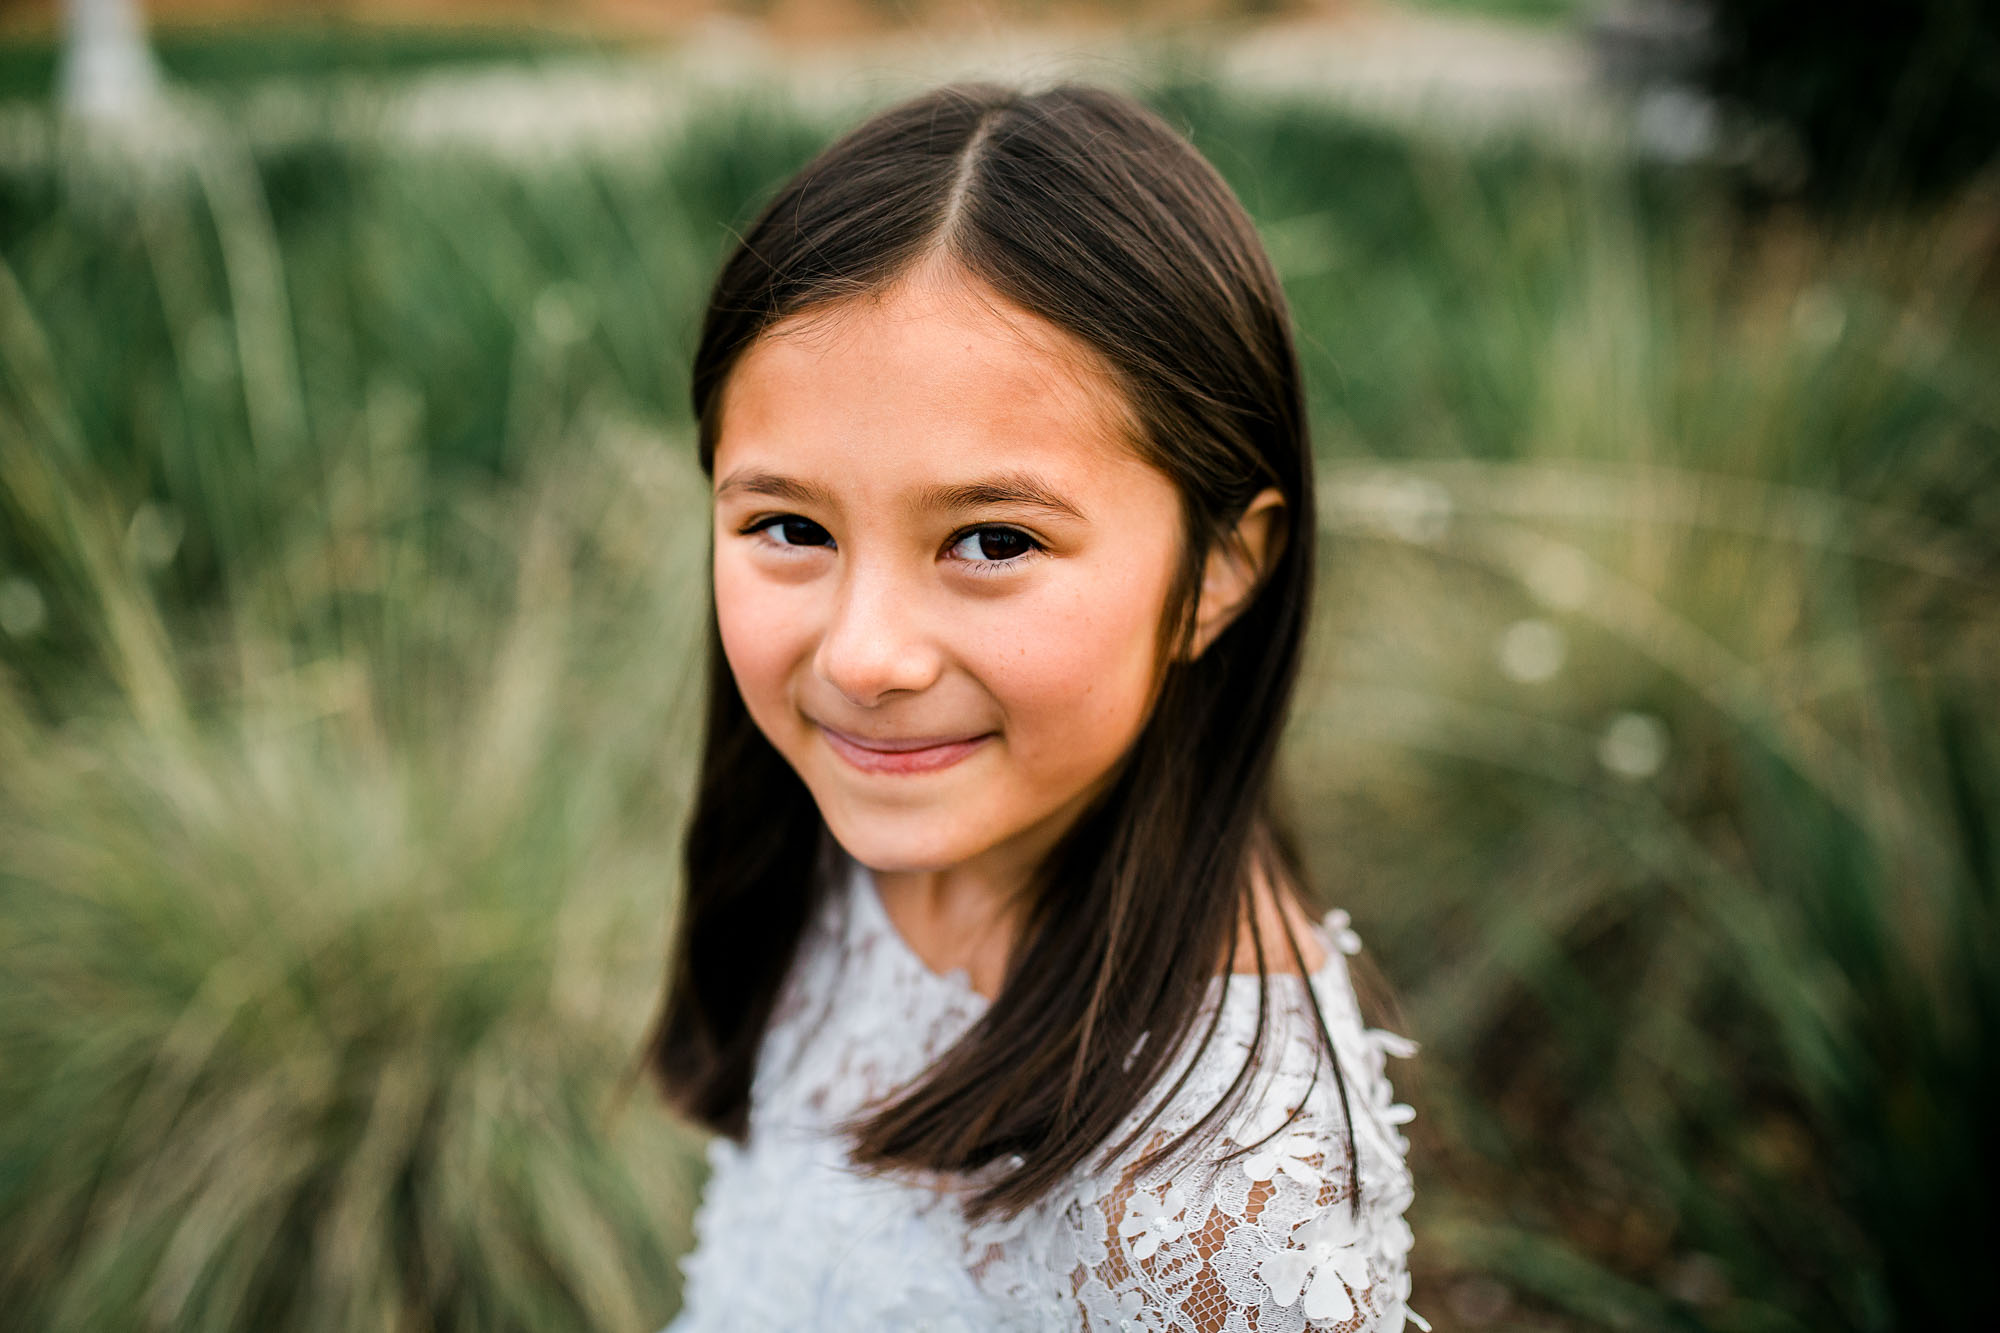 An 8-year-old girl's portrait is captured during a lifestyle photo session with Amy Wright Photography, who is based out of Roseville, California.